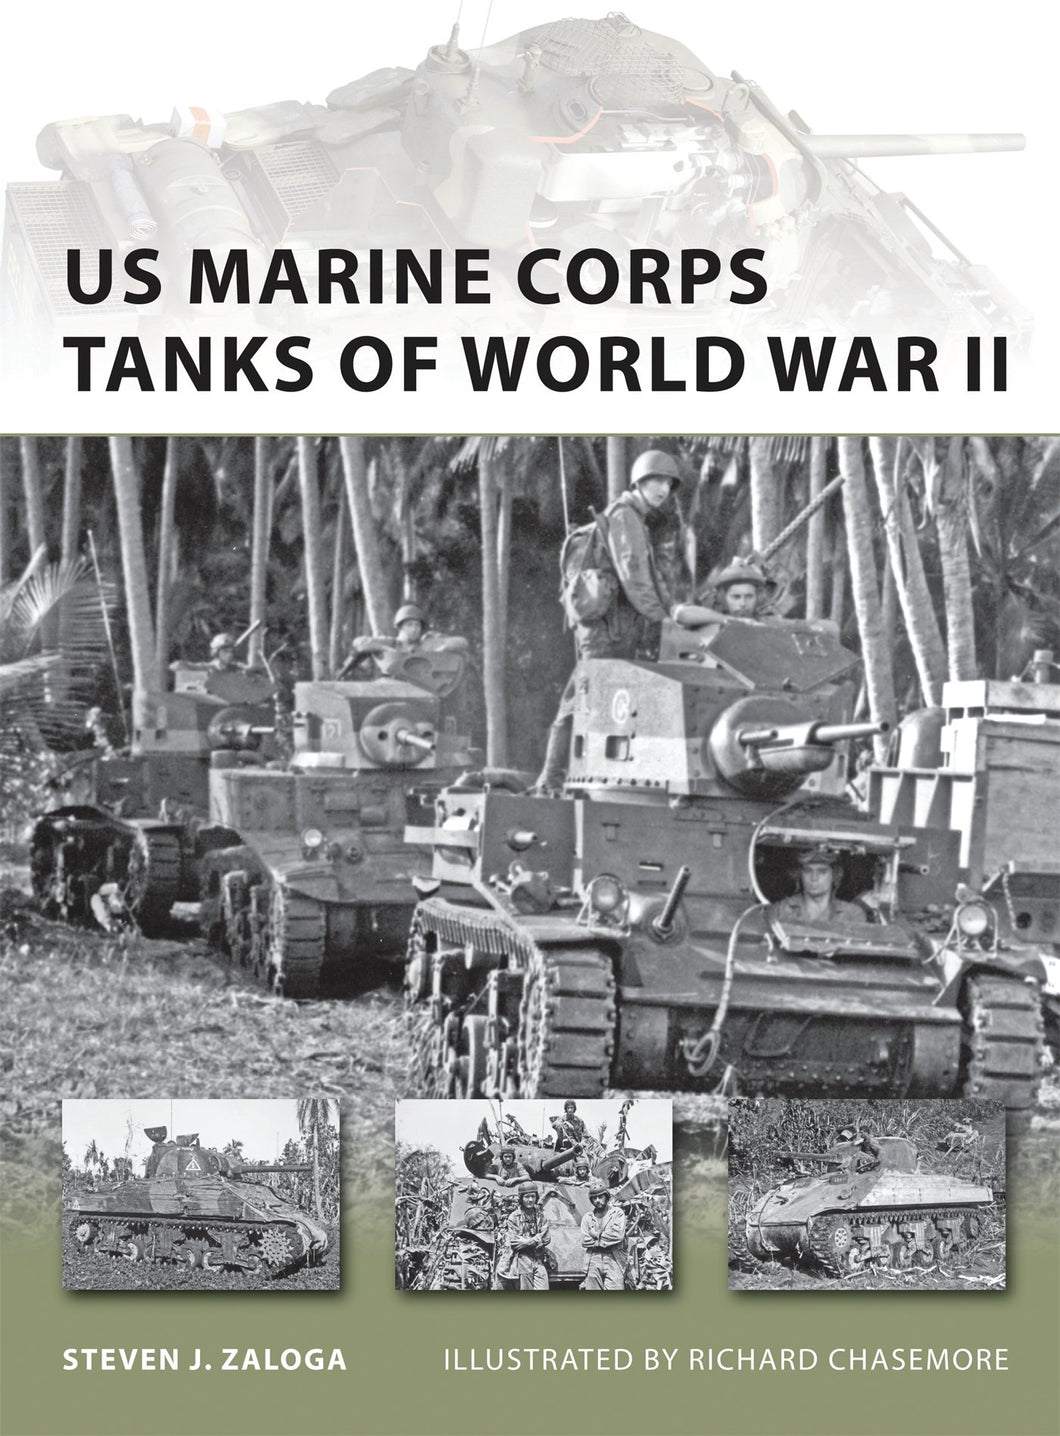 US Marine Corps Tanks of World War II - The Tank Museum